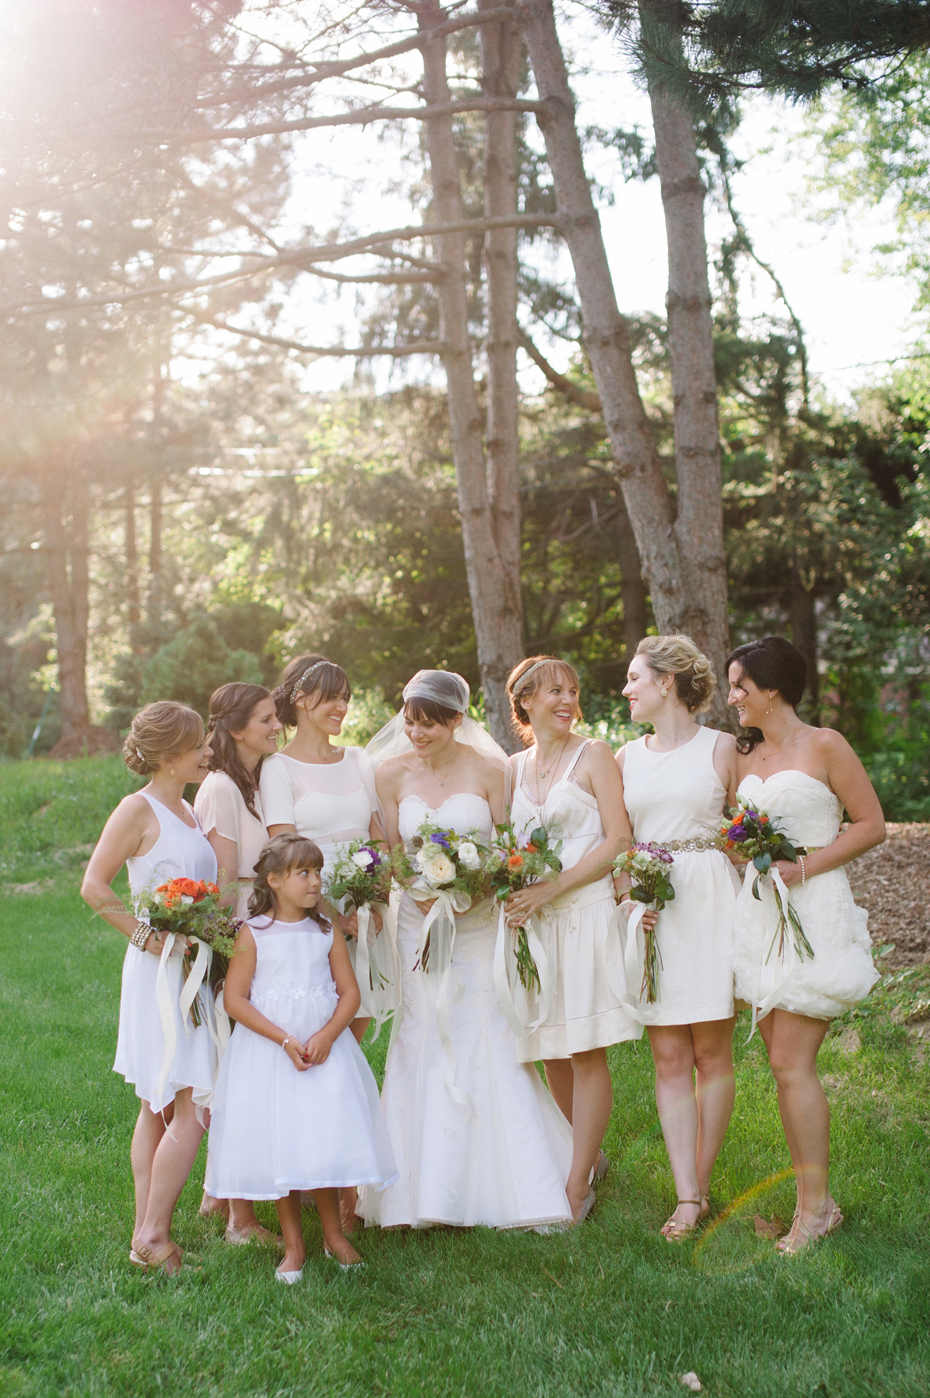 Bridesmaids with the bride and their vintage hand tied bouquets by Detroit Michigan wedding photographer, Heather Jowett.